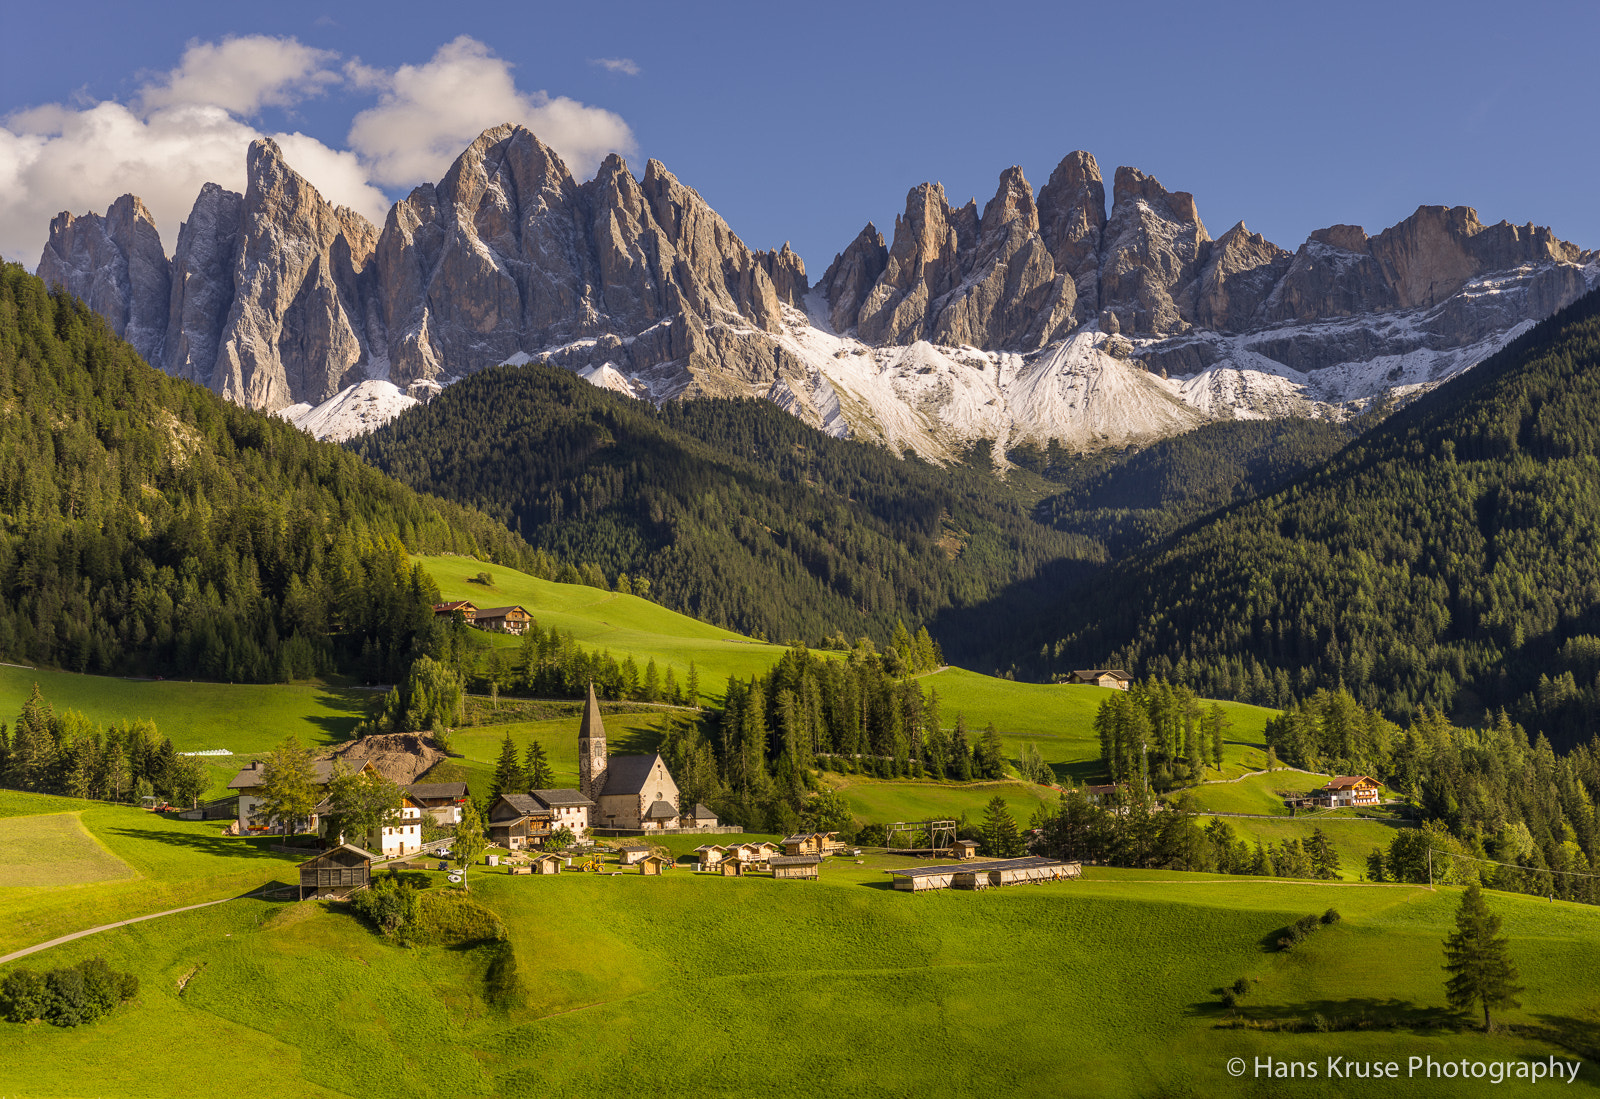 Photograph Santa Maddalena in afternoon September light by Hans Kruse on 500px